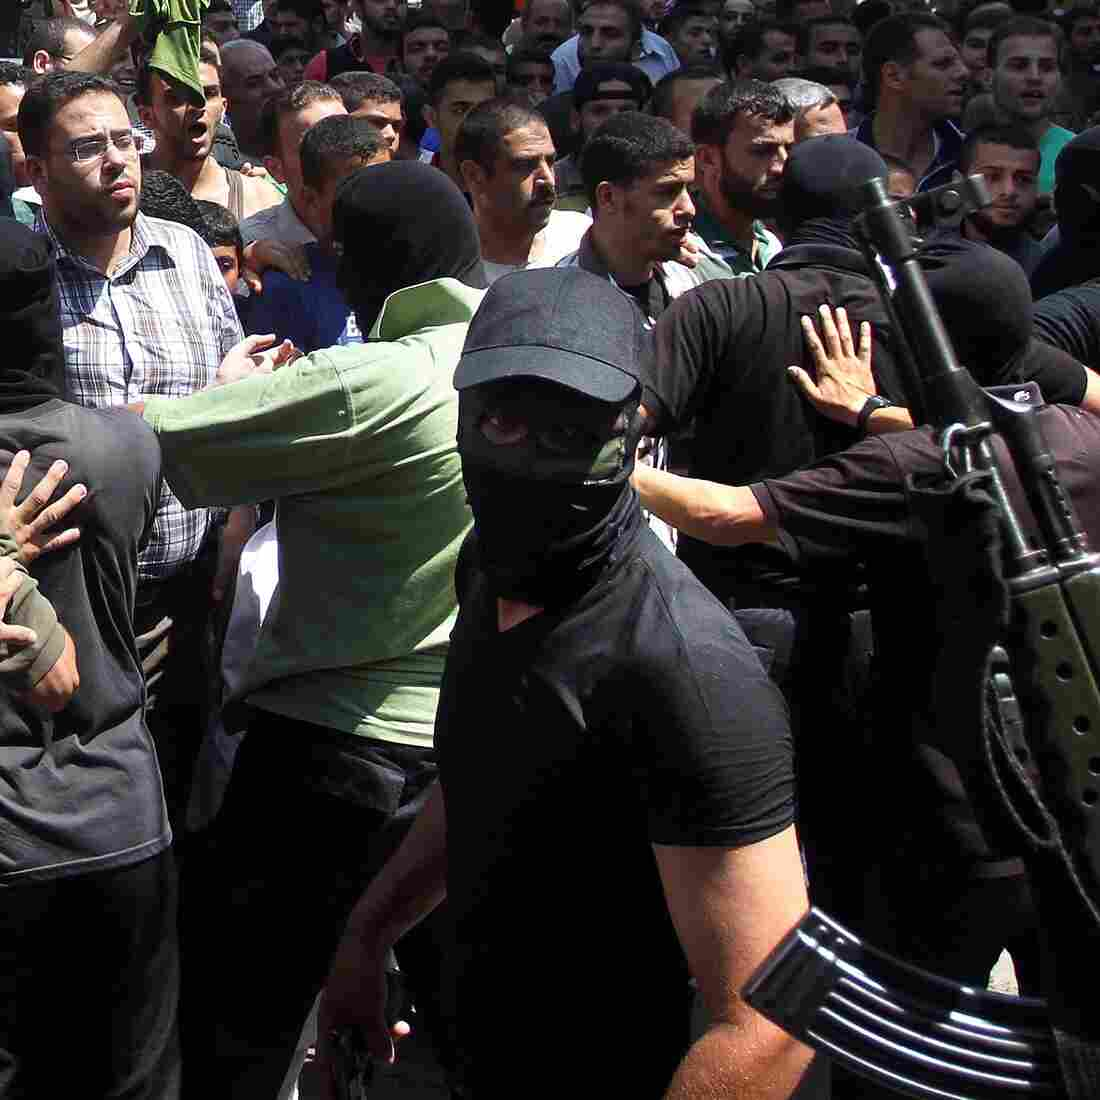 Under Cover Of Conflict, Hamas Killed Palestinians, Amnesty Alleges